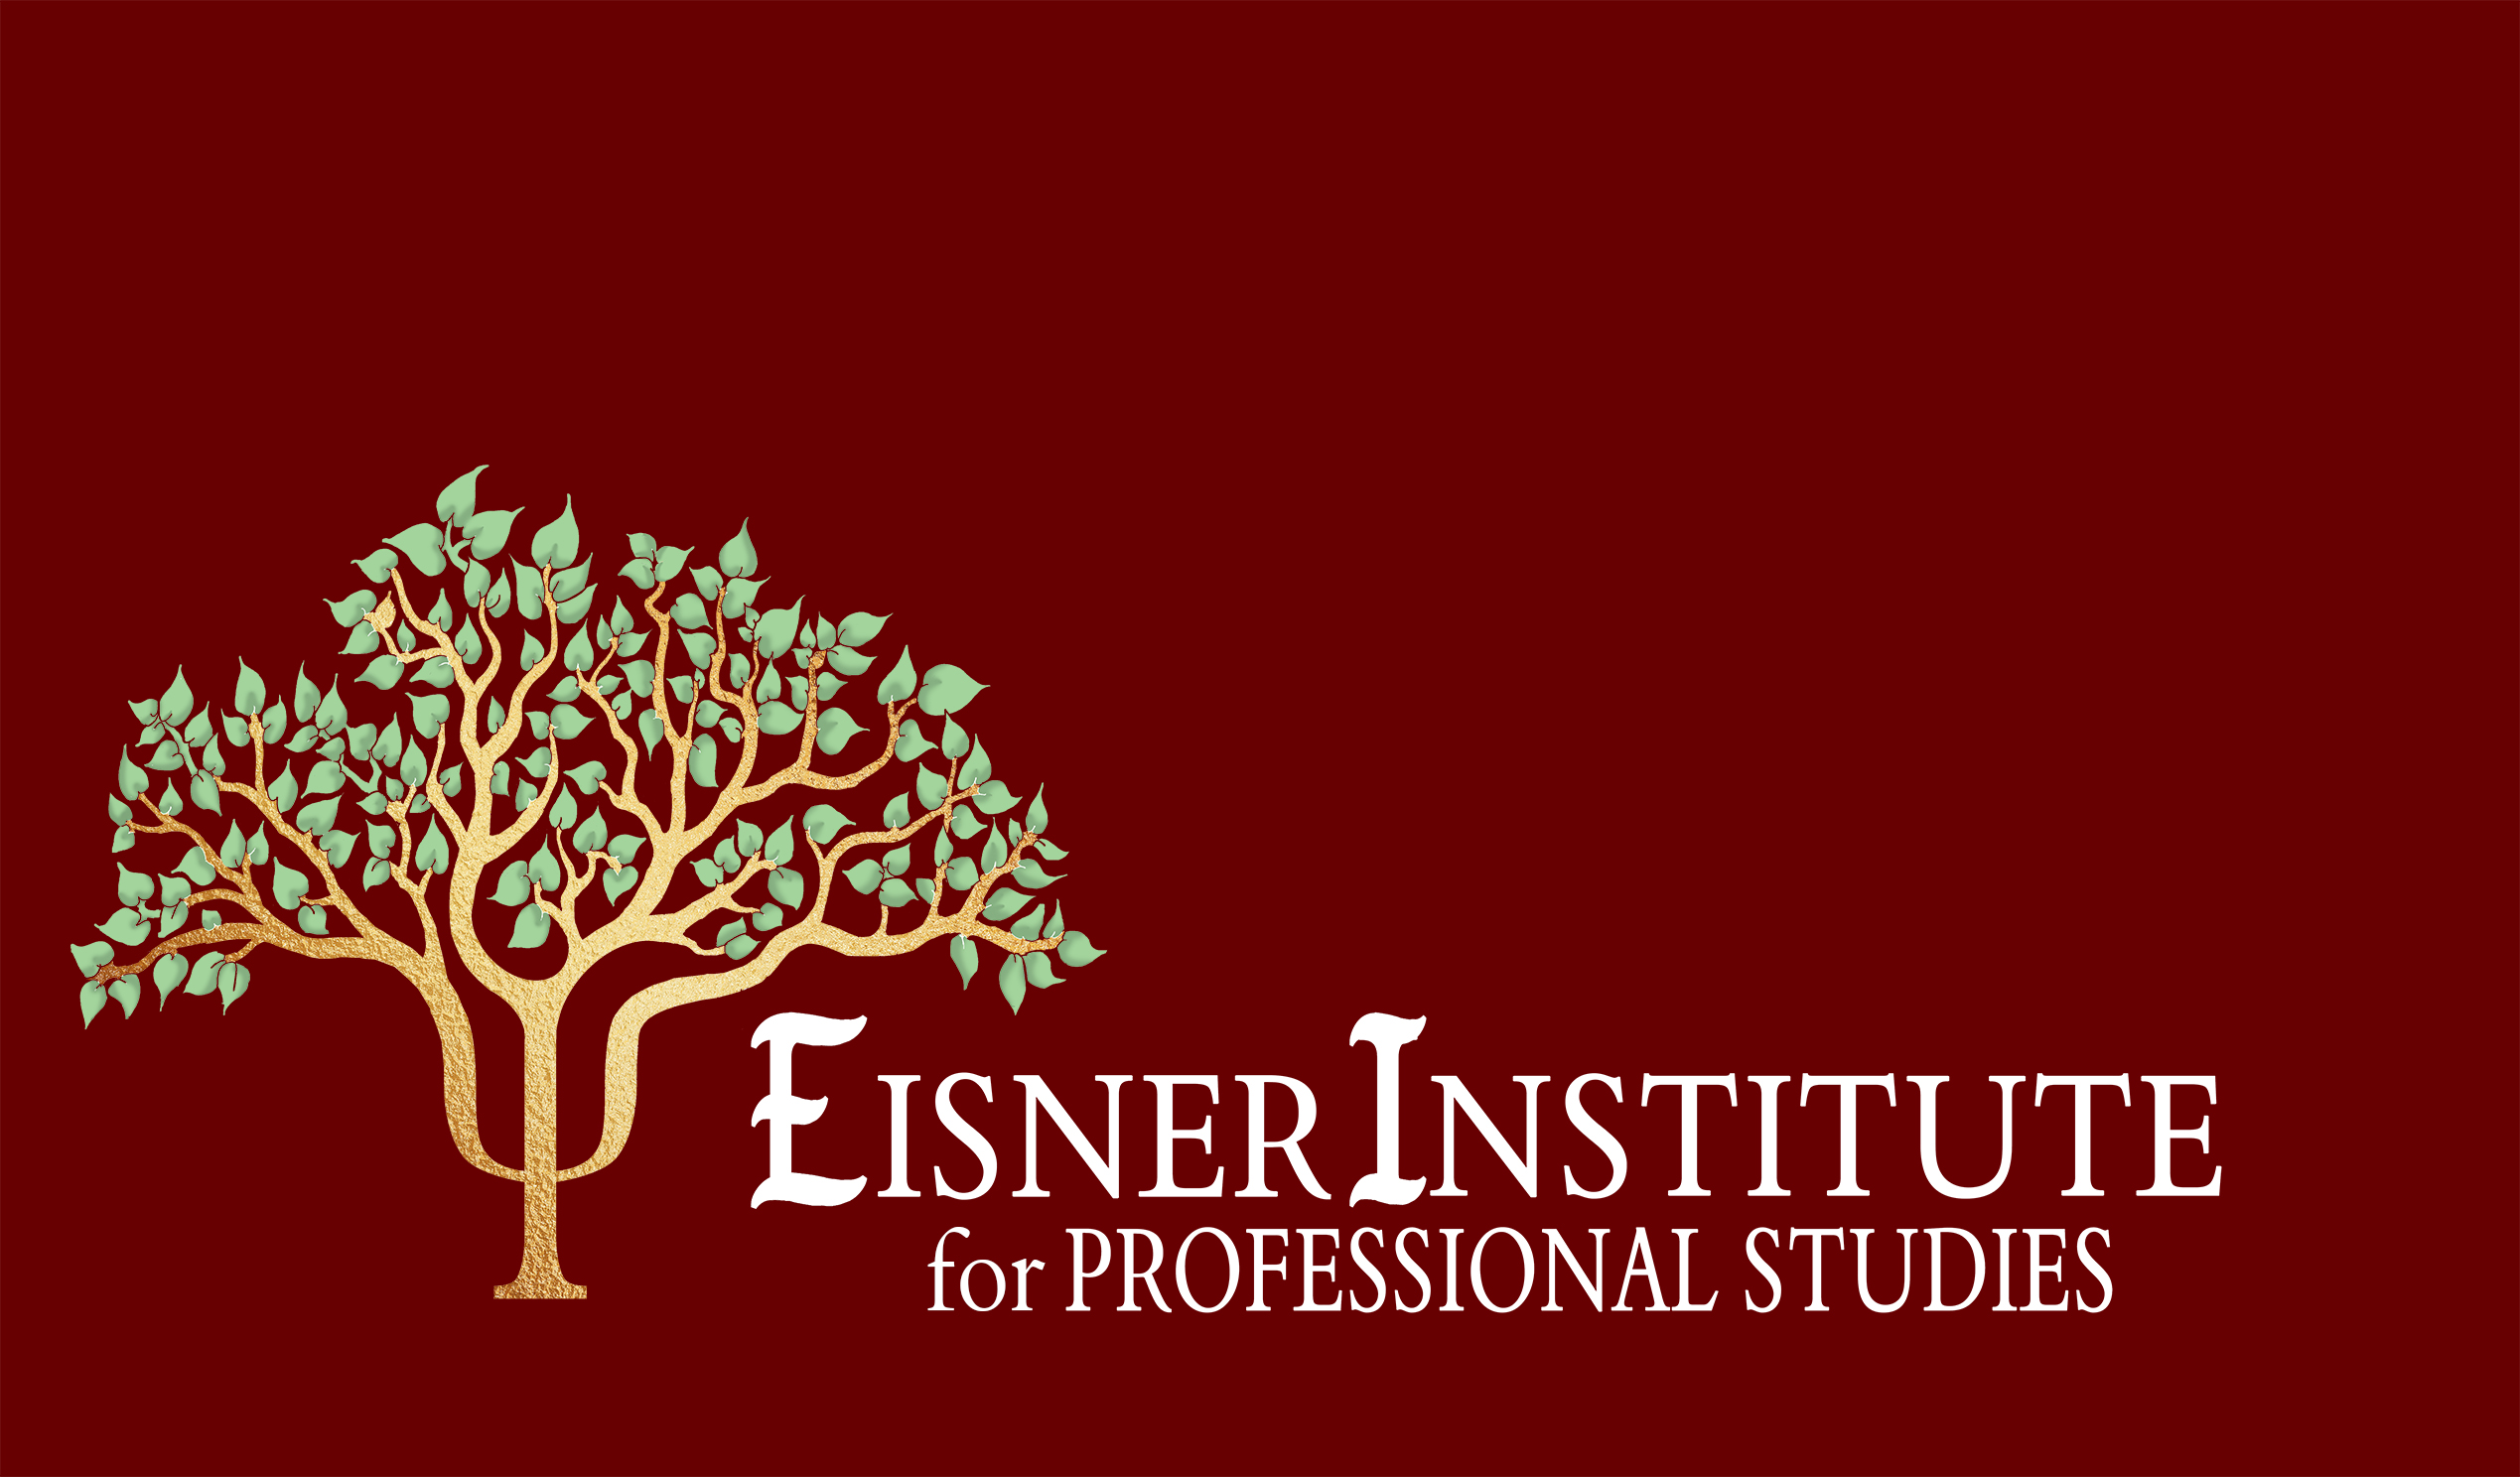 Buddhist Psychology and Spiritual Psychology 100% Online Graduate Programs  Announced by Eisner Institute for Professional Studies